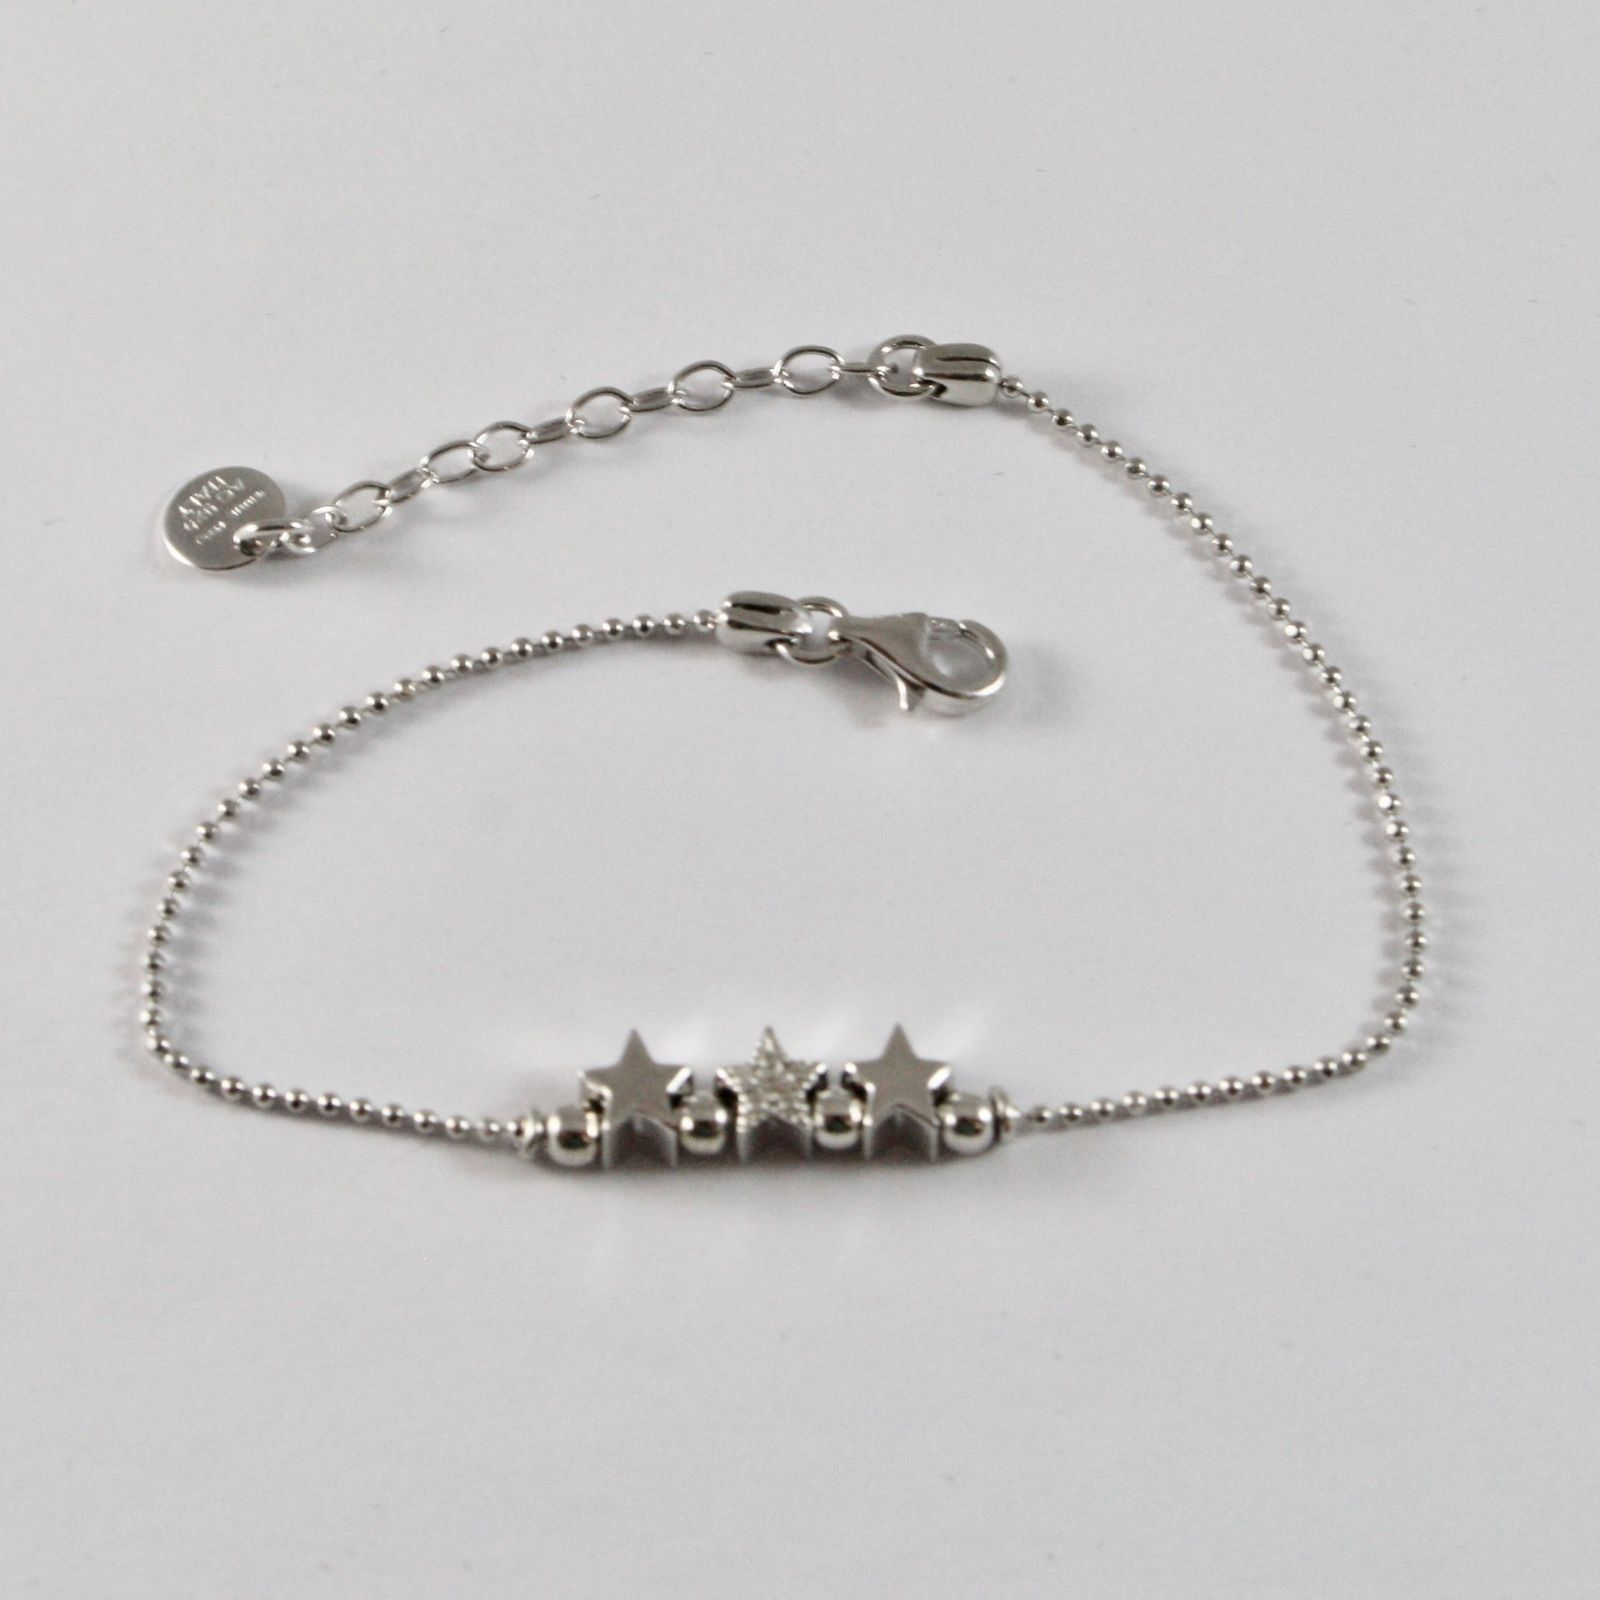 SILVER 925 BRACELET JACK&CO STARS, BALLS FACETED AND ZIRCONS JCB0783